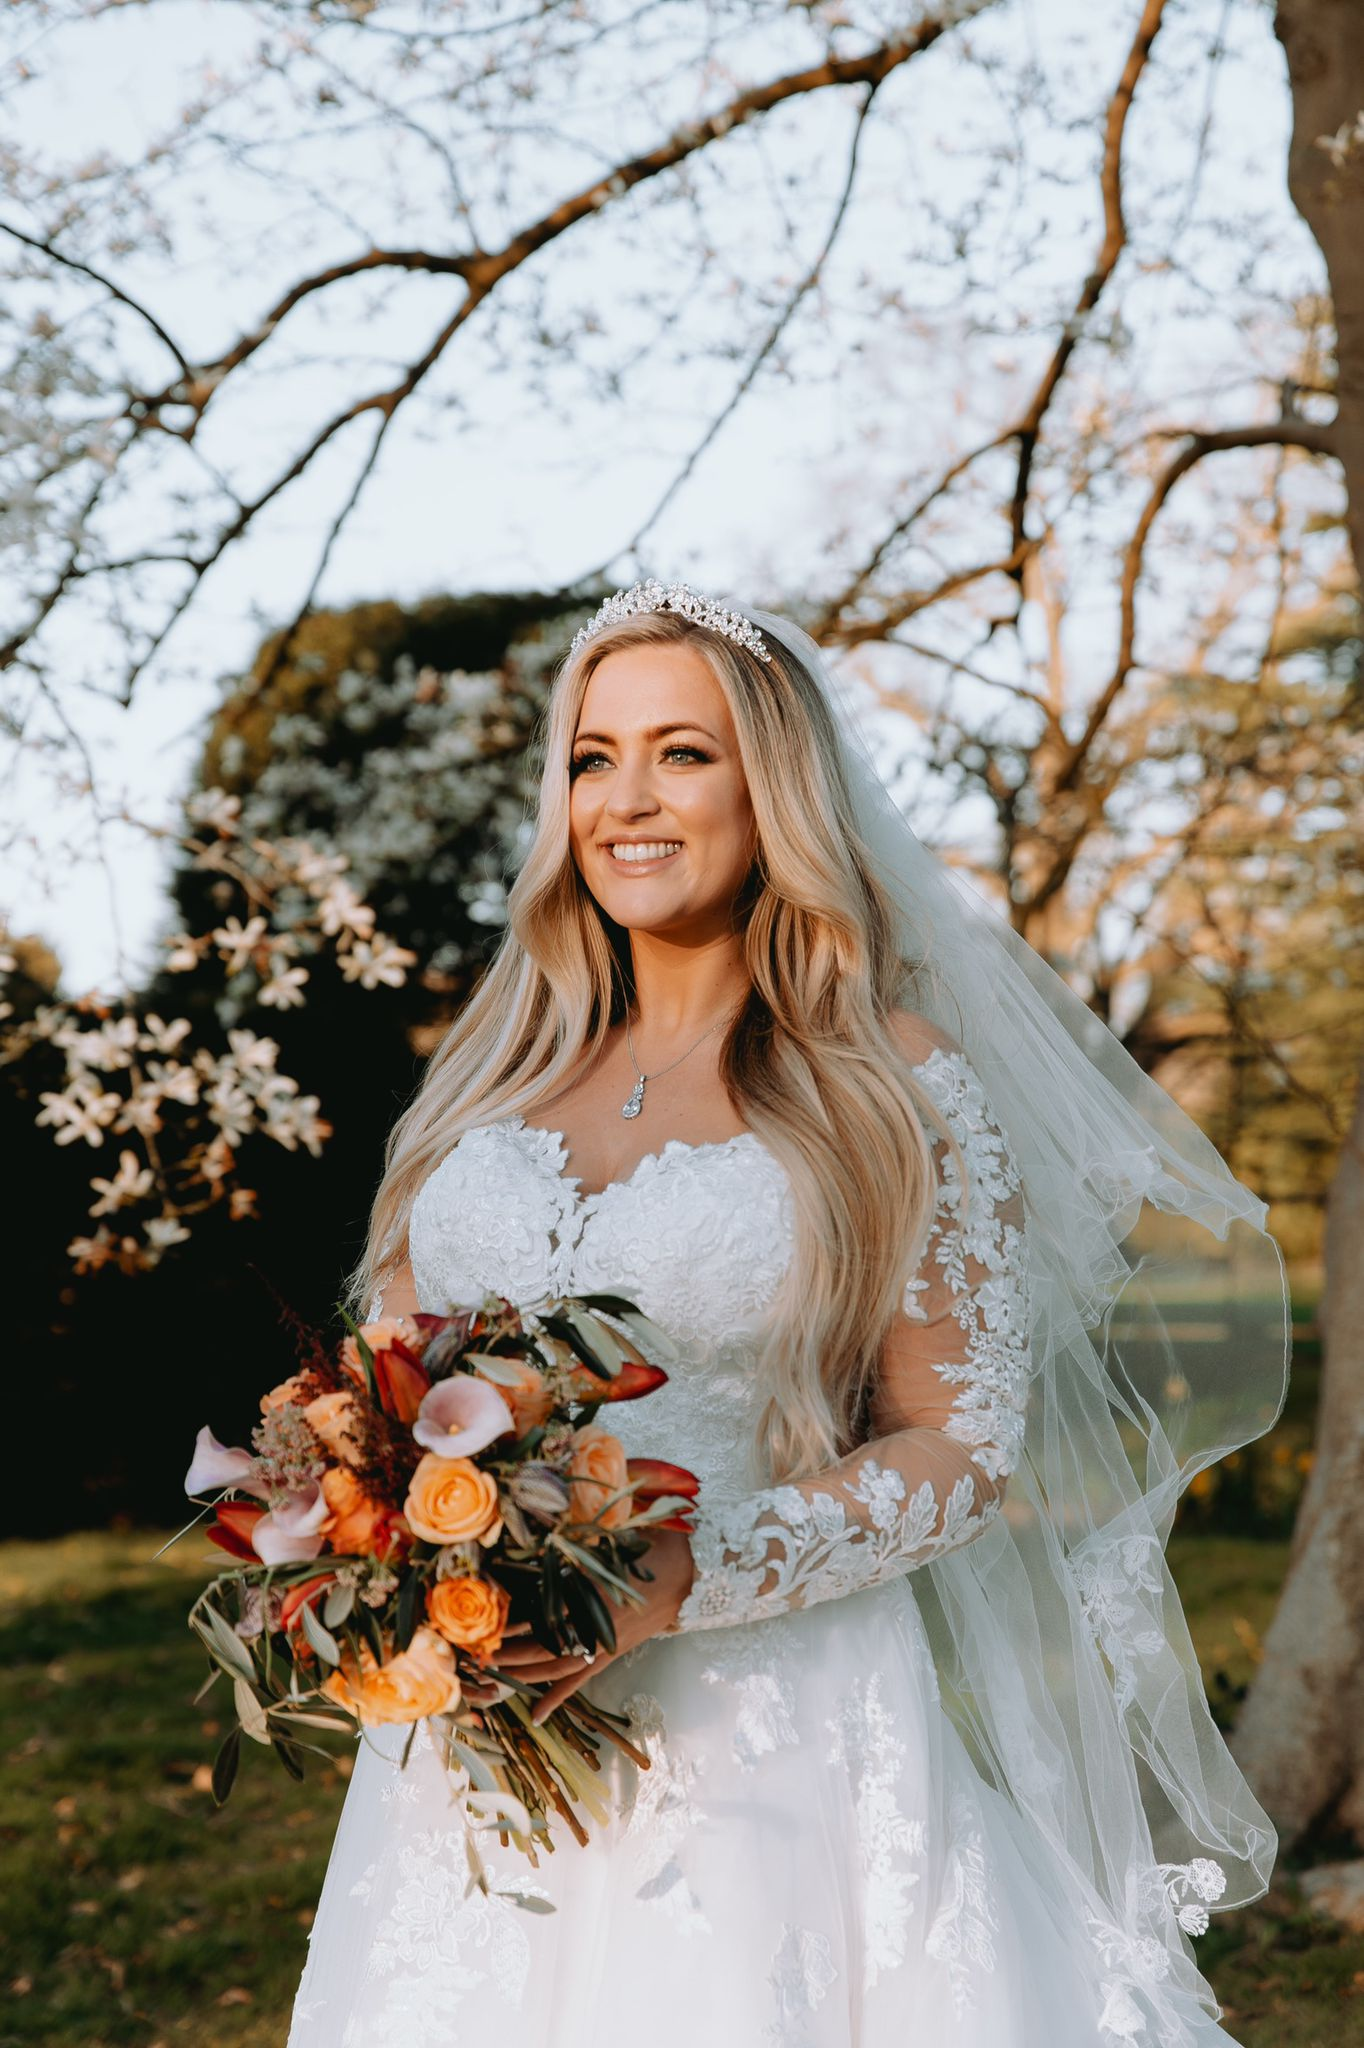 Married at First Sight bride Megan